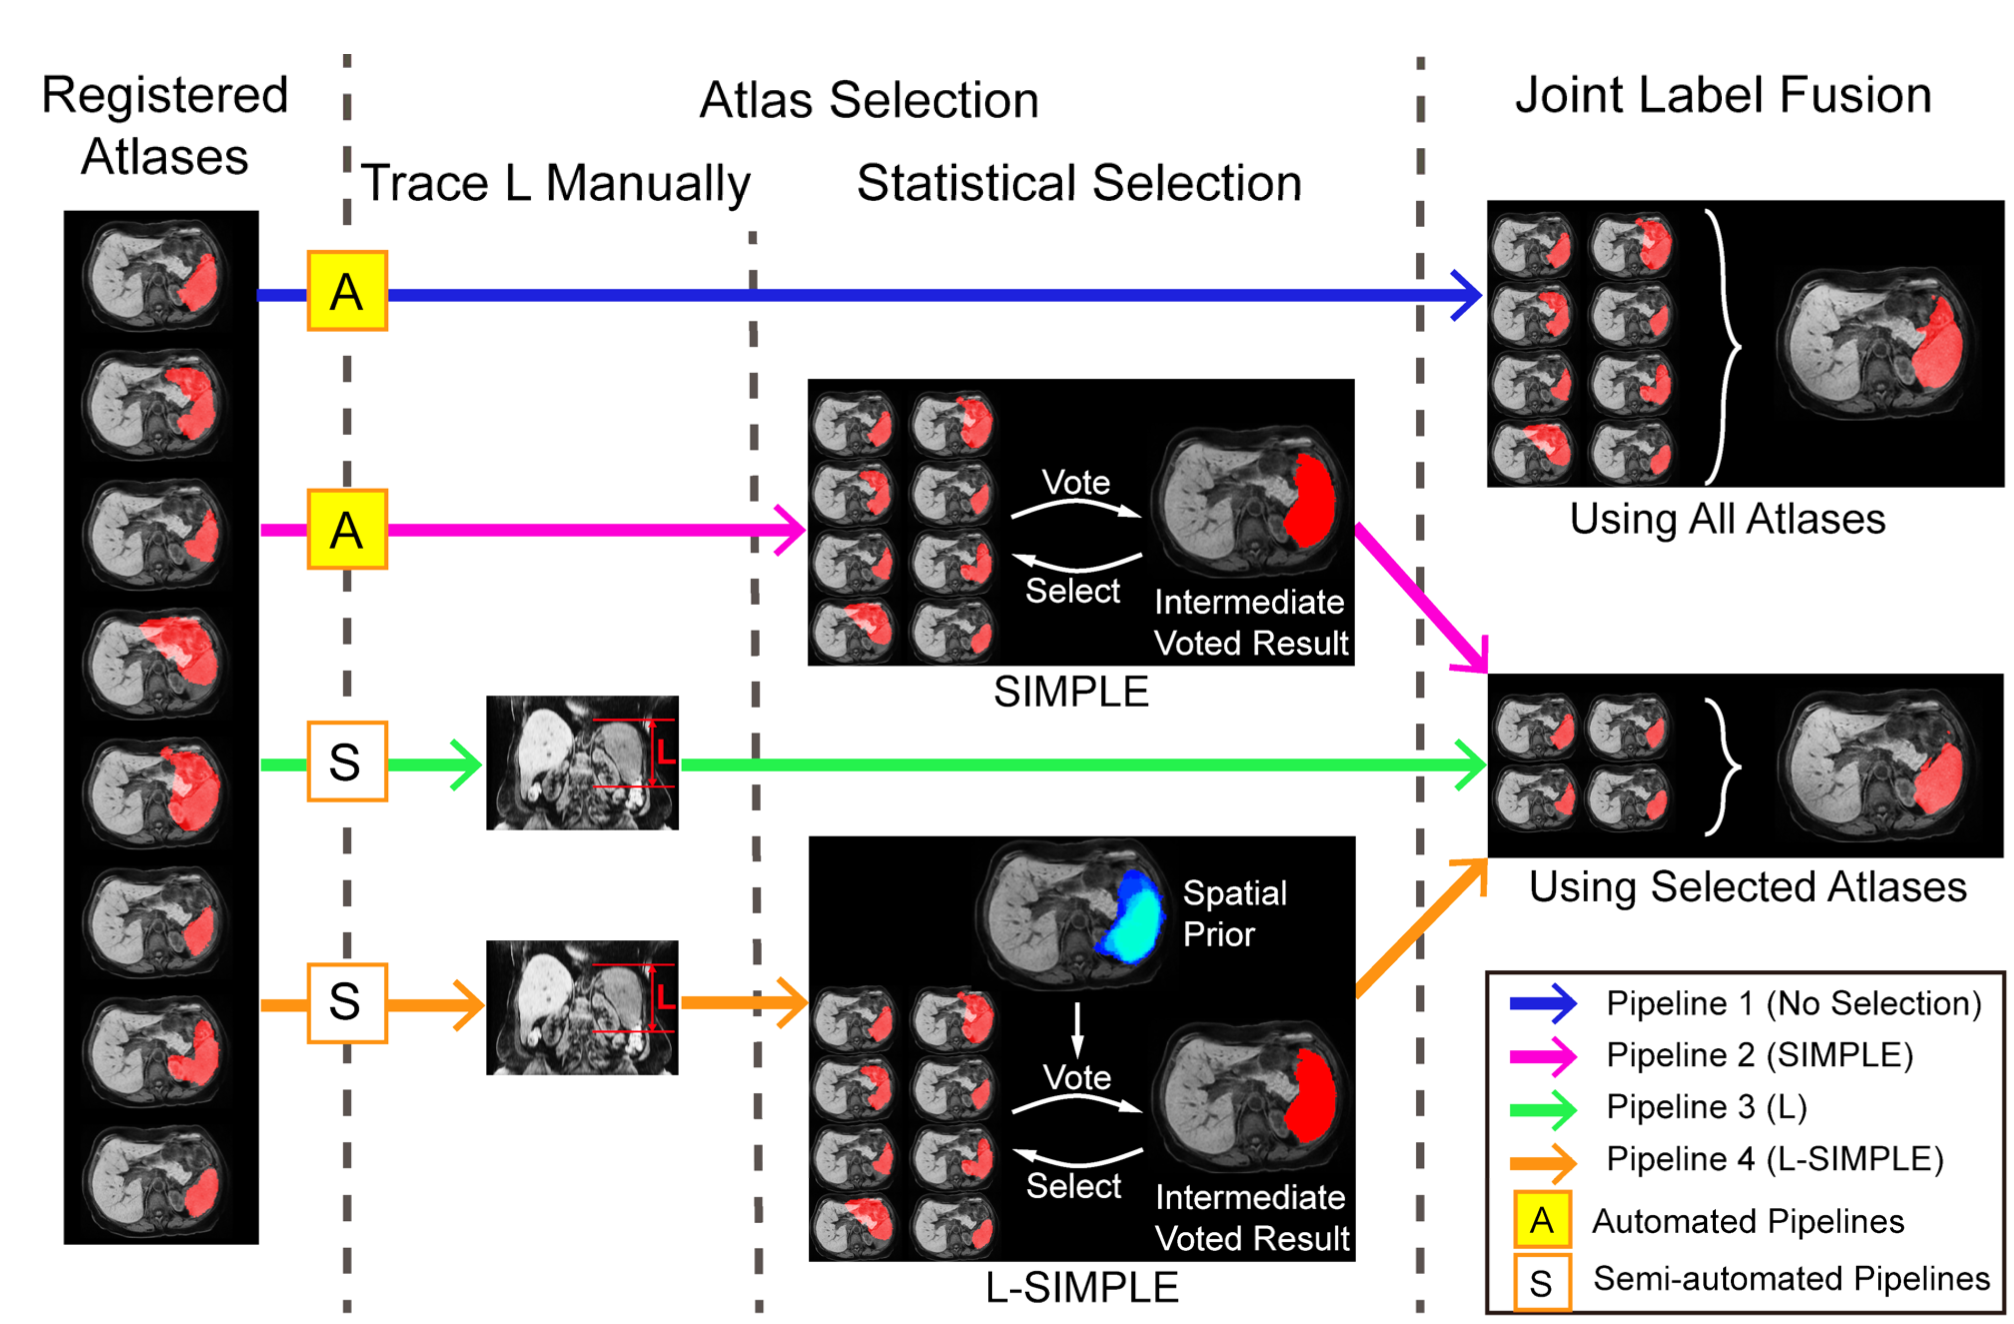 Flow chart of the four different MAS pipelines. Pipeline 1 conducts the label fusion without atlas selection. Pipeline 2 conducts the atlas selection using the SIMPLE statistical selection method. Pipeline 3 selects atlases which have the closer L to the target image. Pipeline 4 is the L-SIMPLE method, which combines the advantages in Pipelines 2 and 3. A spatial prior is derived using L to guide the statistical atlas selection procedure.